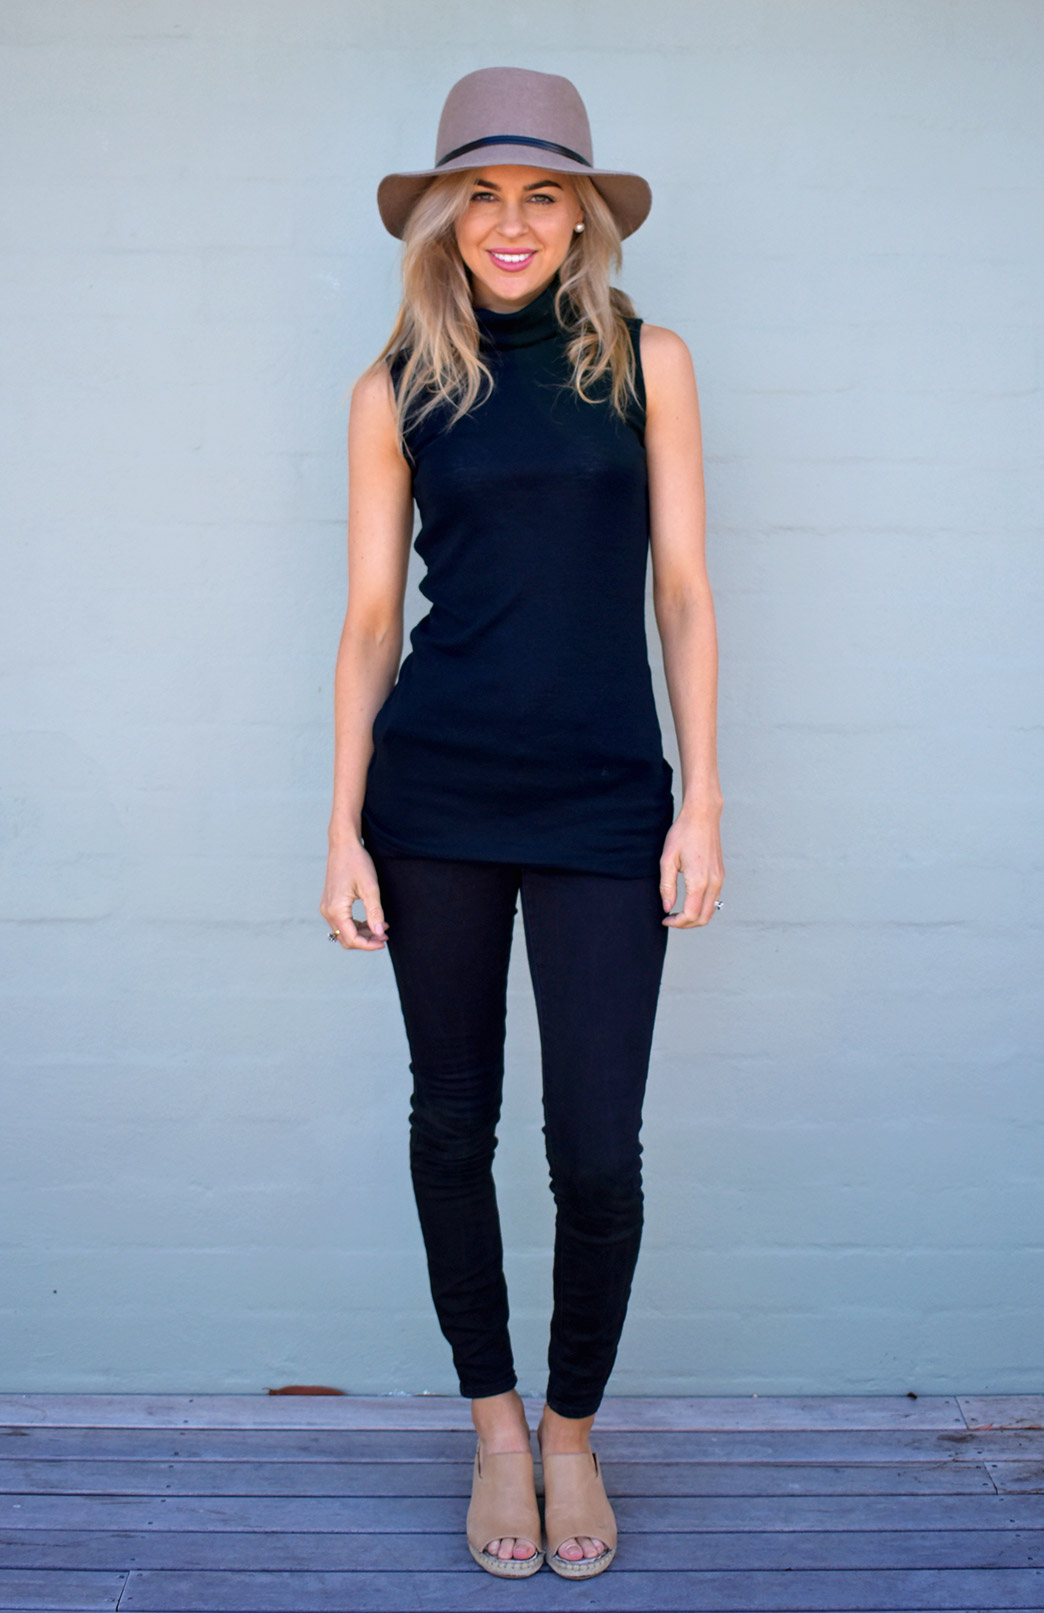 Estelle Top - Women's Merino Wool Black Sleeveless Polo Neck Top - Smitten Merino Tasmania Australia